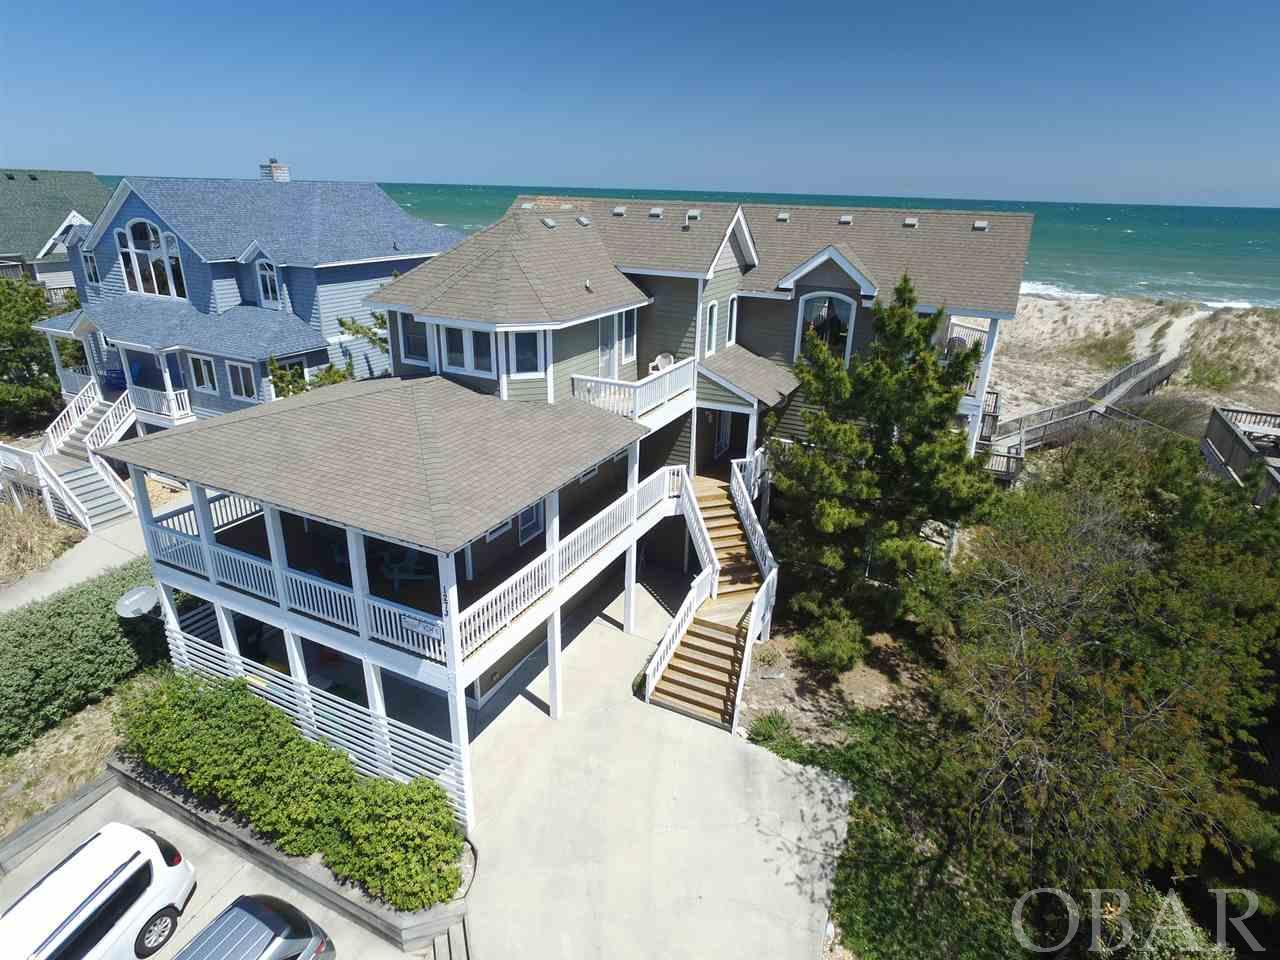 1273 Sandcastle Drive,Corolla,NC 27927,8 Bedrooms Bedrooms,8 BathroomsBathrooms,Residential,Sandcastle Drive,97986